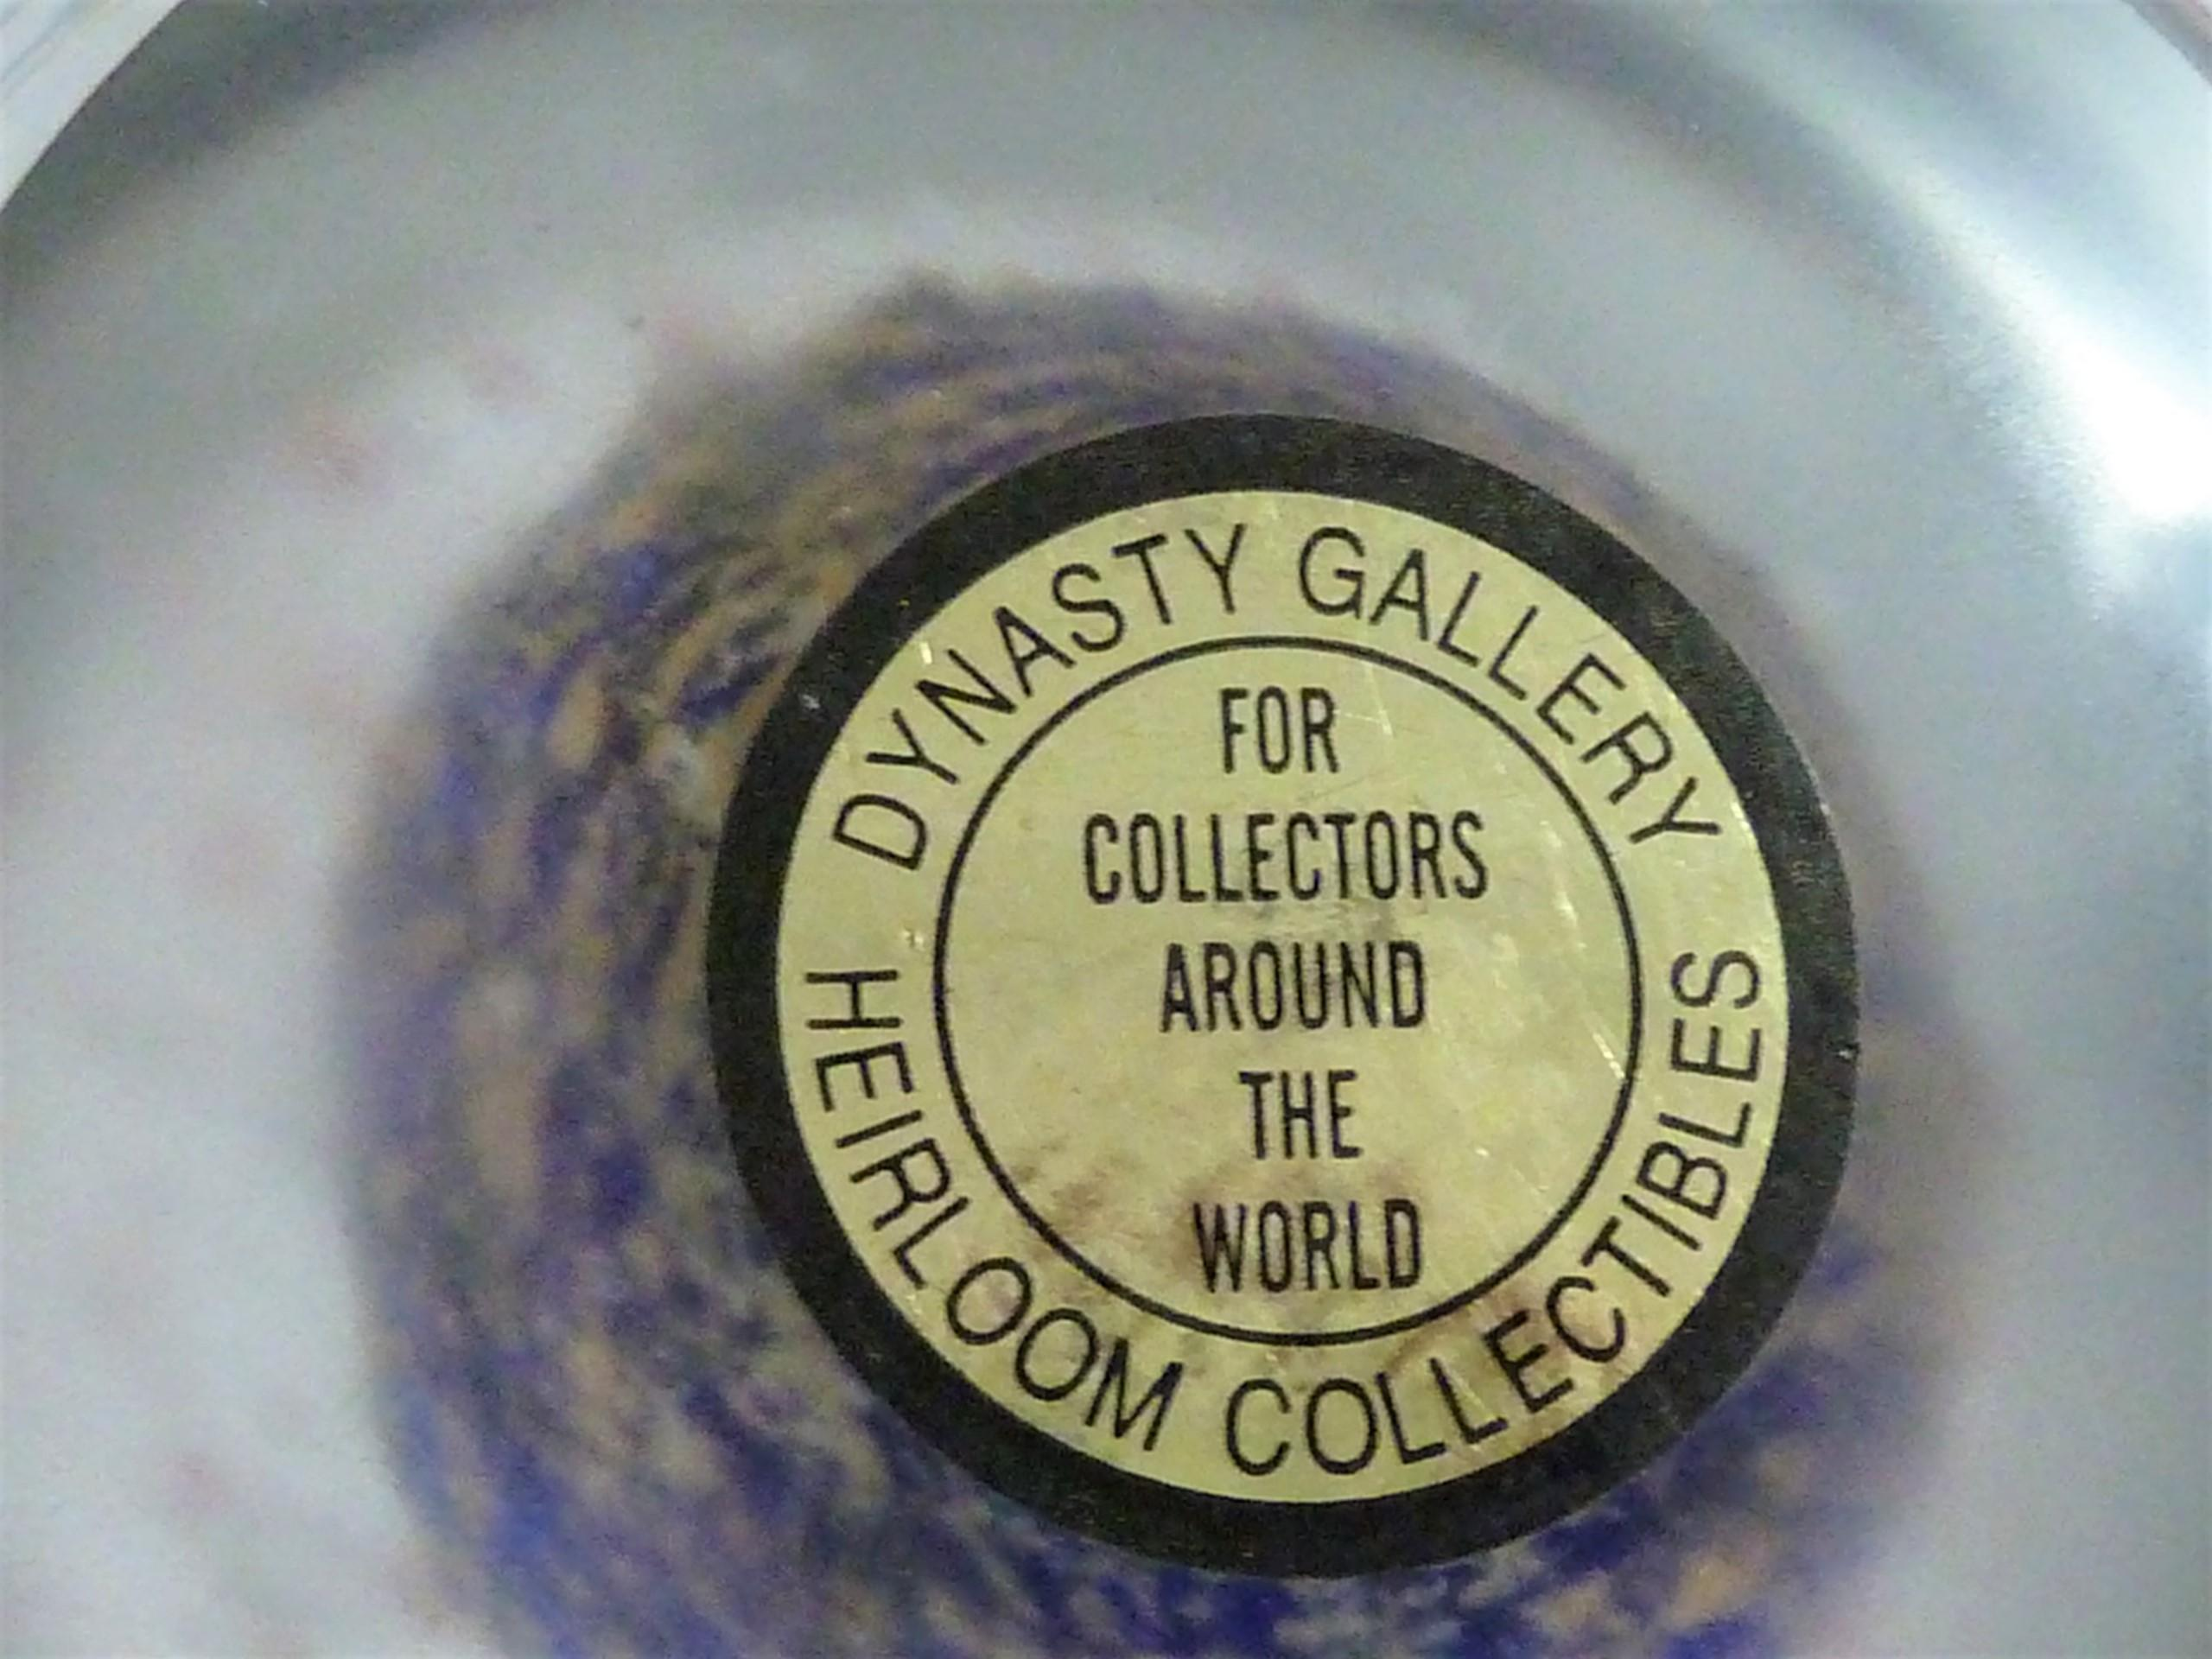 MAJESTIC LARGE GOLD/BLUE/WHITE BUBBLE LAYERED DYNASTY GALLERY HEIRLOOM GLASS PAPERWEIGHT  appraisal